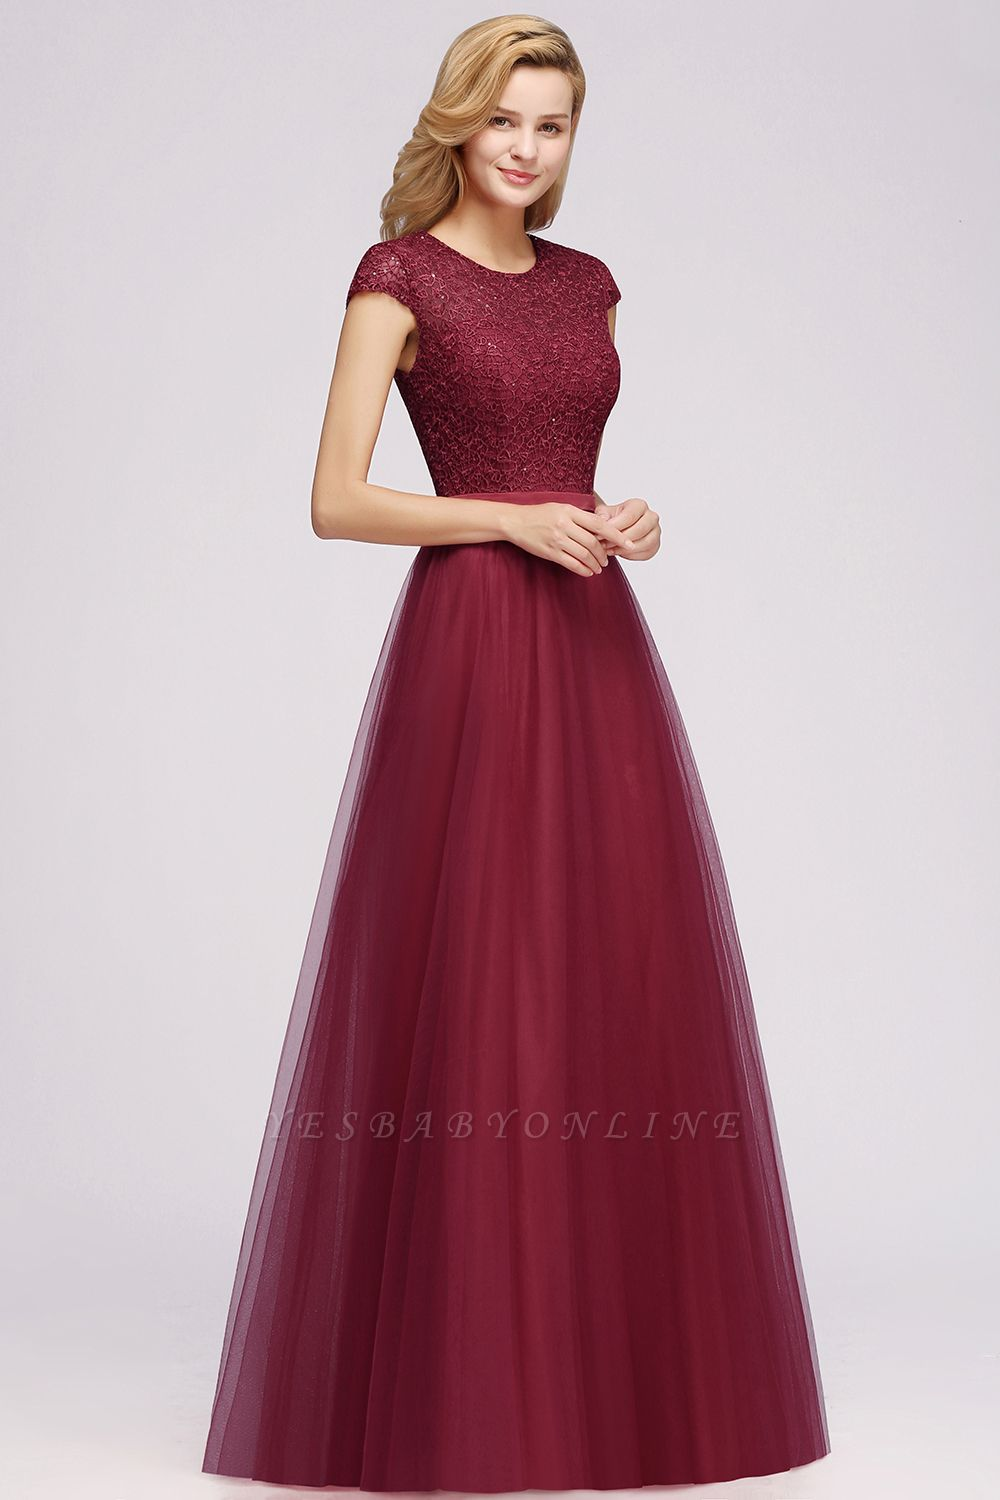 Elegant Cap Sleeves A-line Prom Dresses   Cheap Long Lace Evening Gown